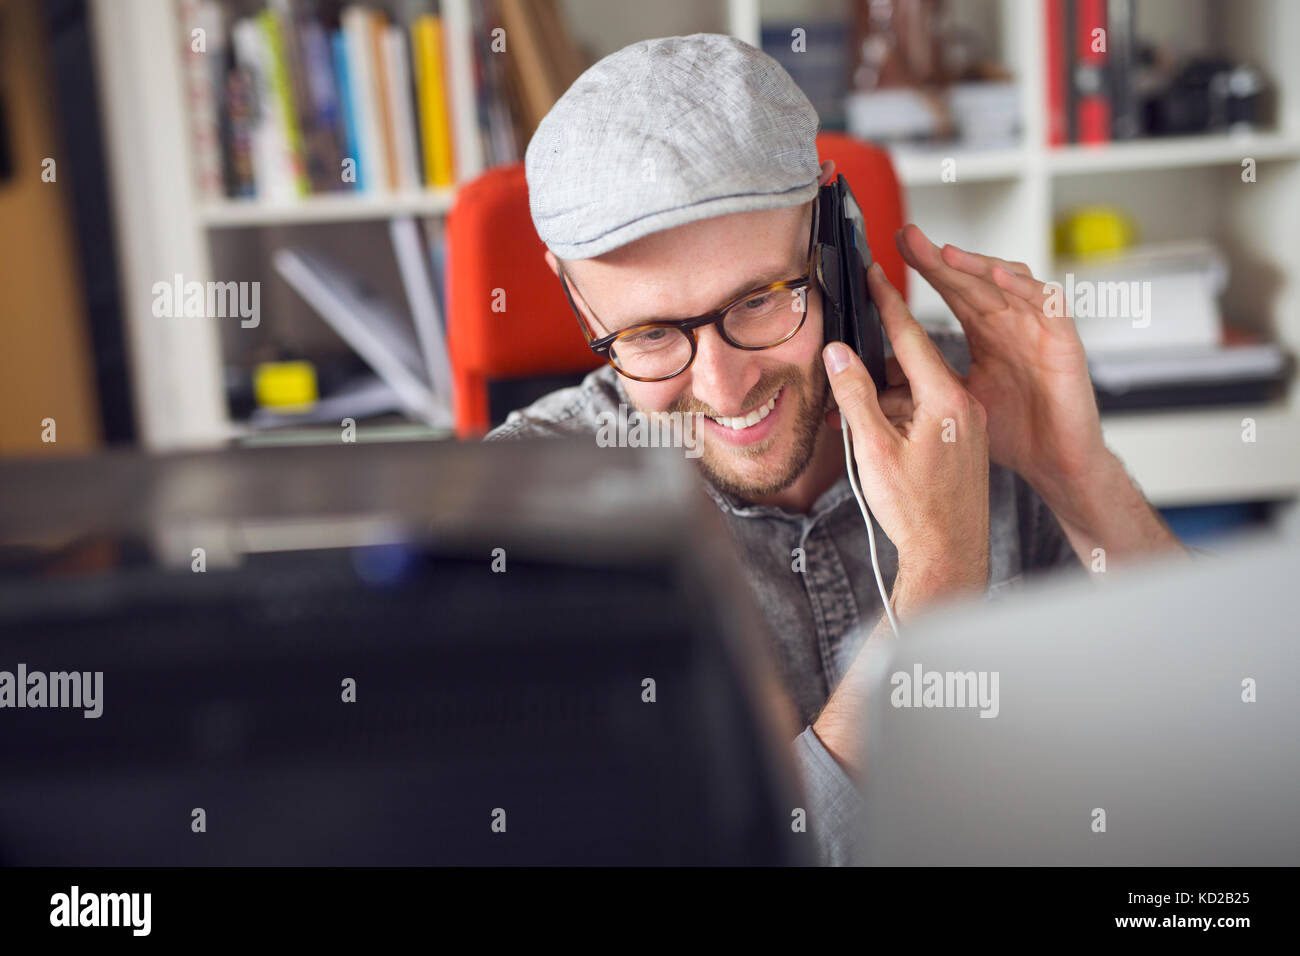 Mid adult man smiling while using phone Banque D'Images